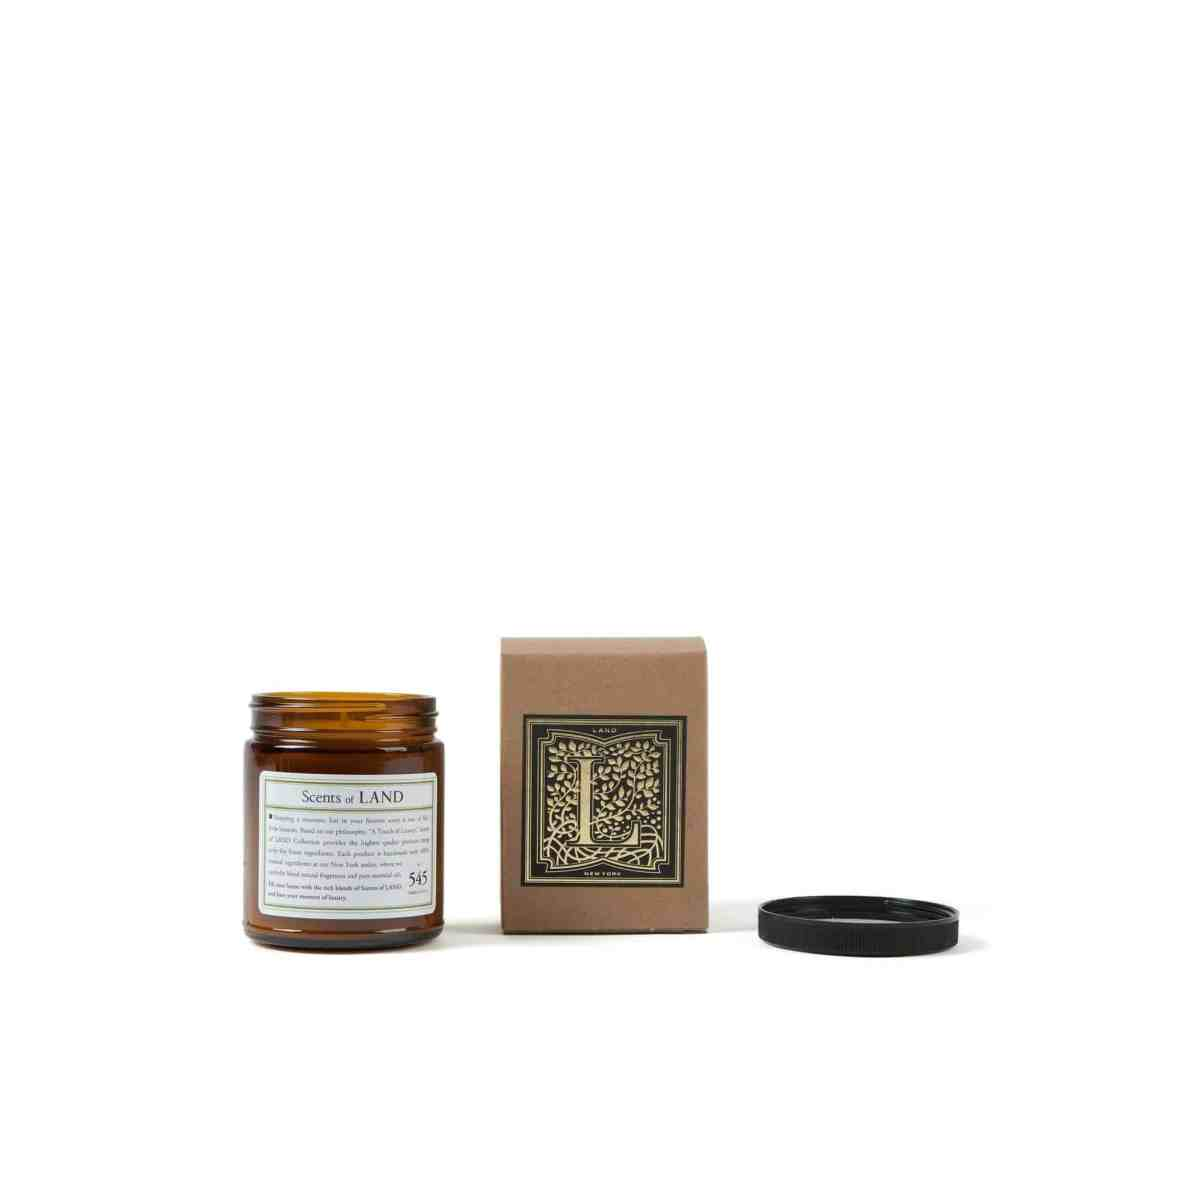 Land-by-land-scent-of-land-candle-large-001